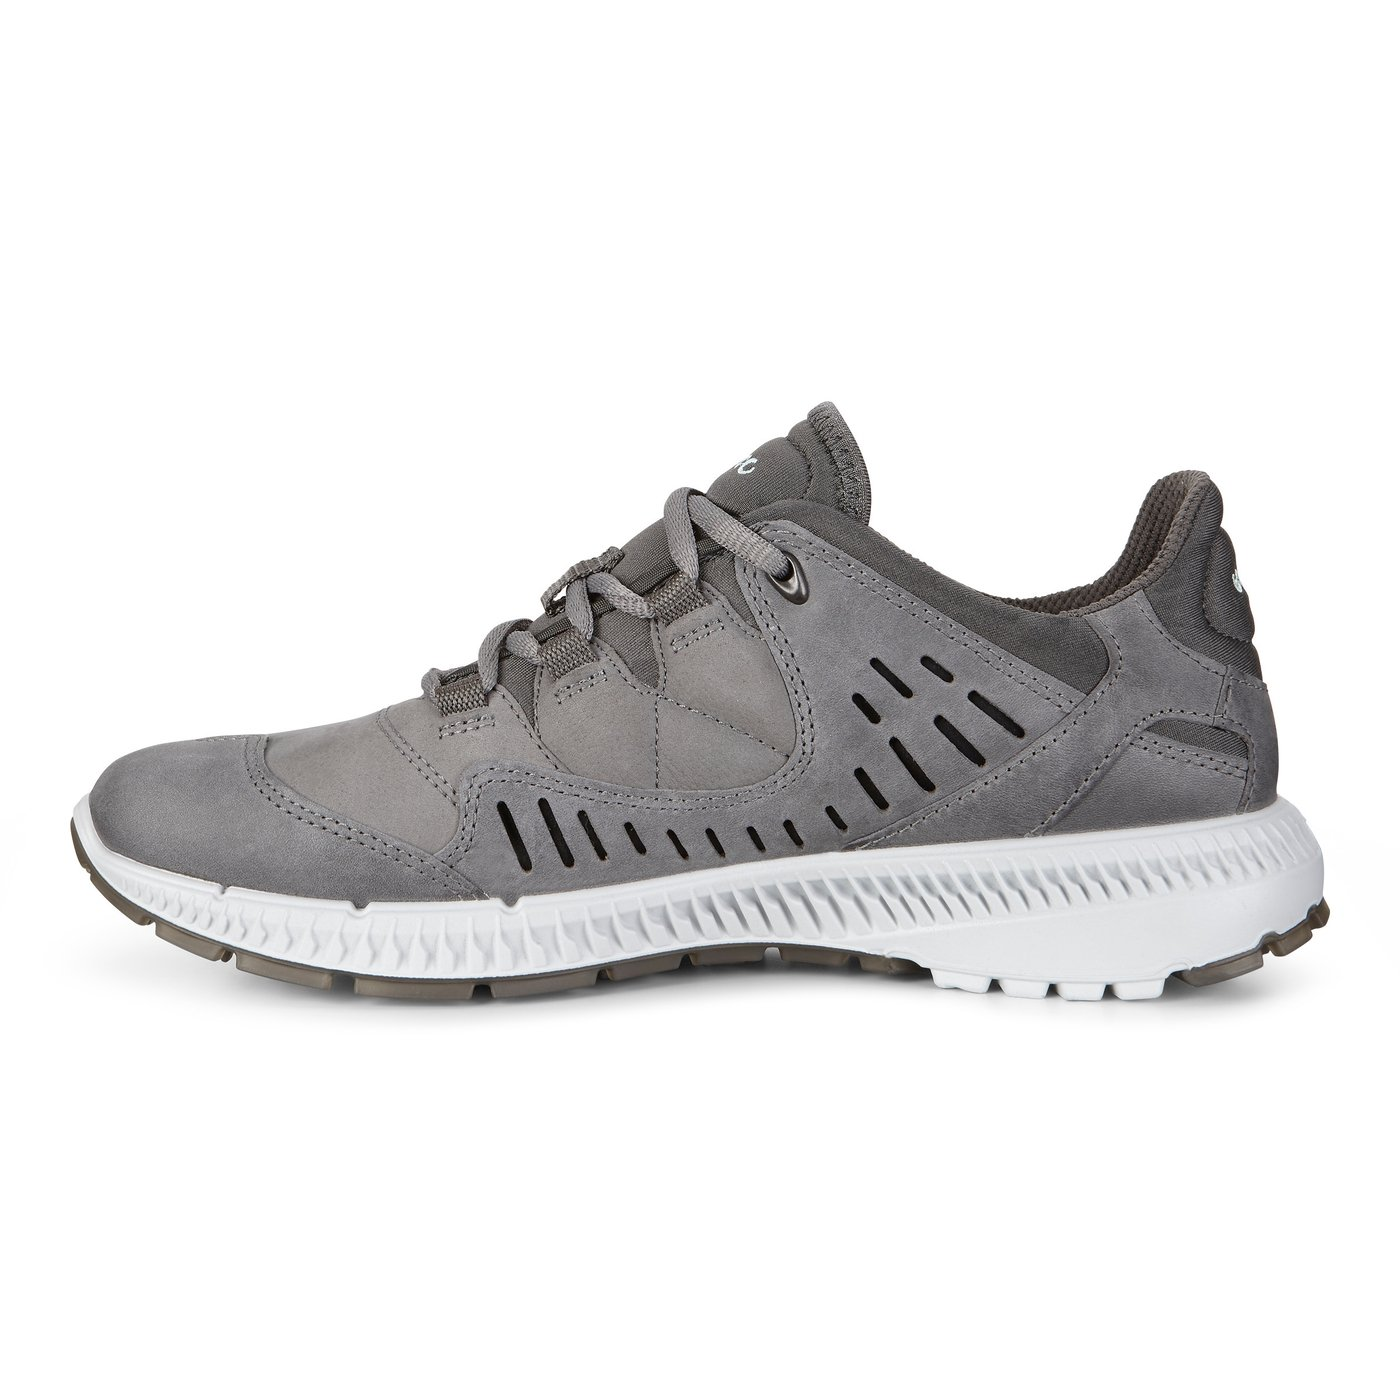 ECCO TERRAWALK W Outdoor Shoe